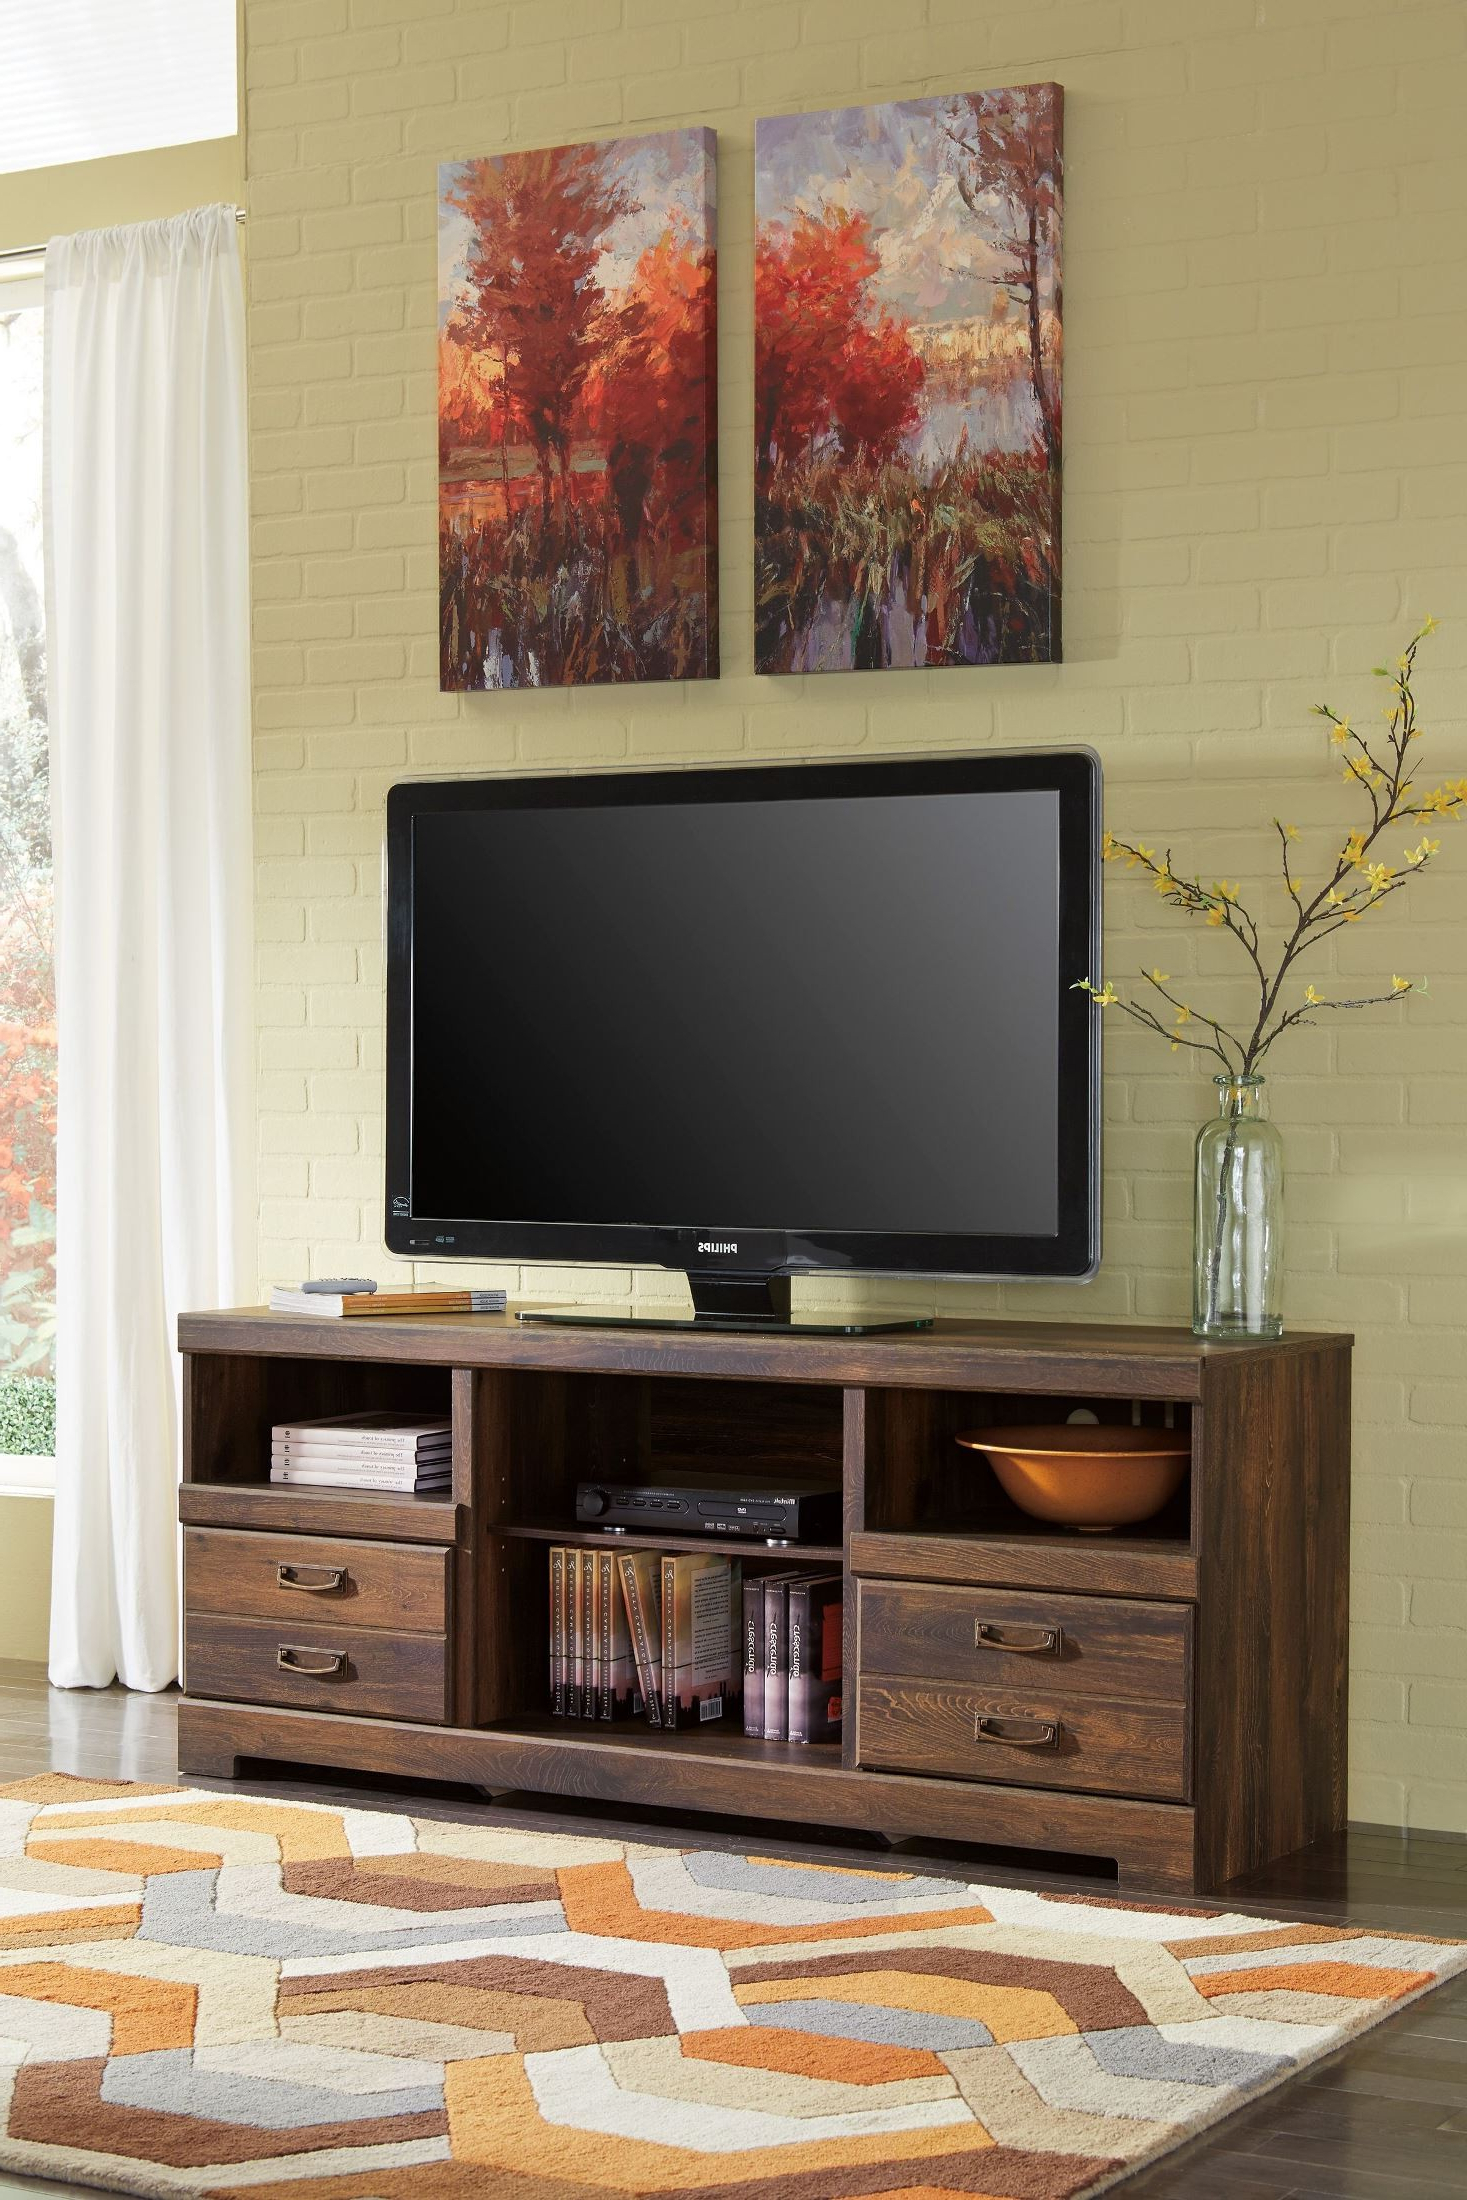 Signature Designashley Quinden Lg Tv Stand With Glass/stone Pertaining To Vista 68 Inch Tv Stands (View 12 of 20)